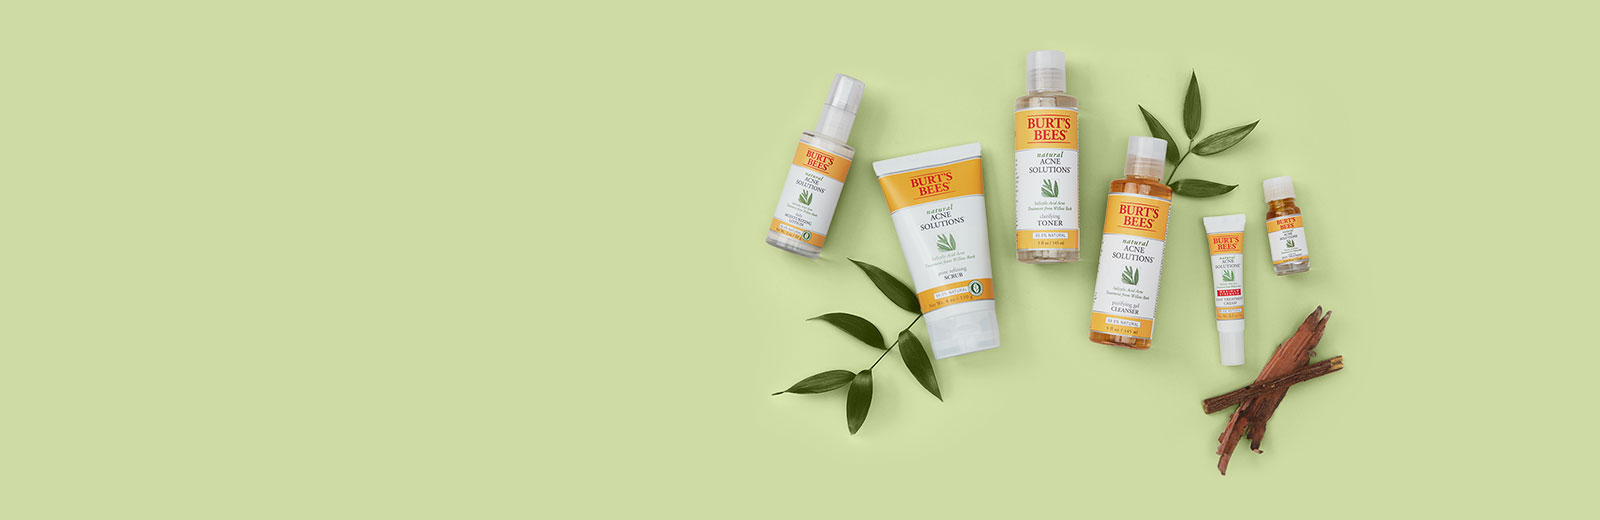 Burt's Bees   Natural Face Care Products - Face Cream & Facial Care